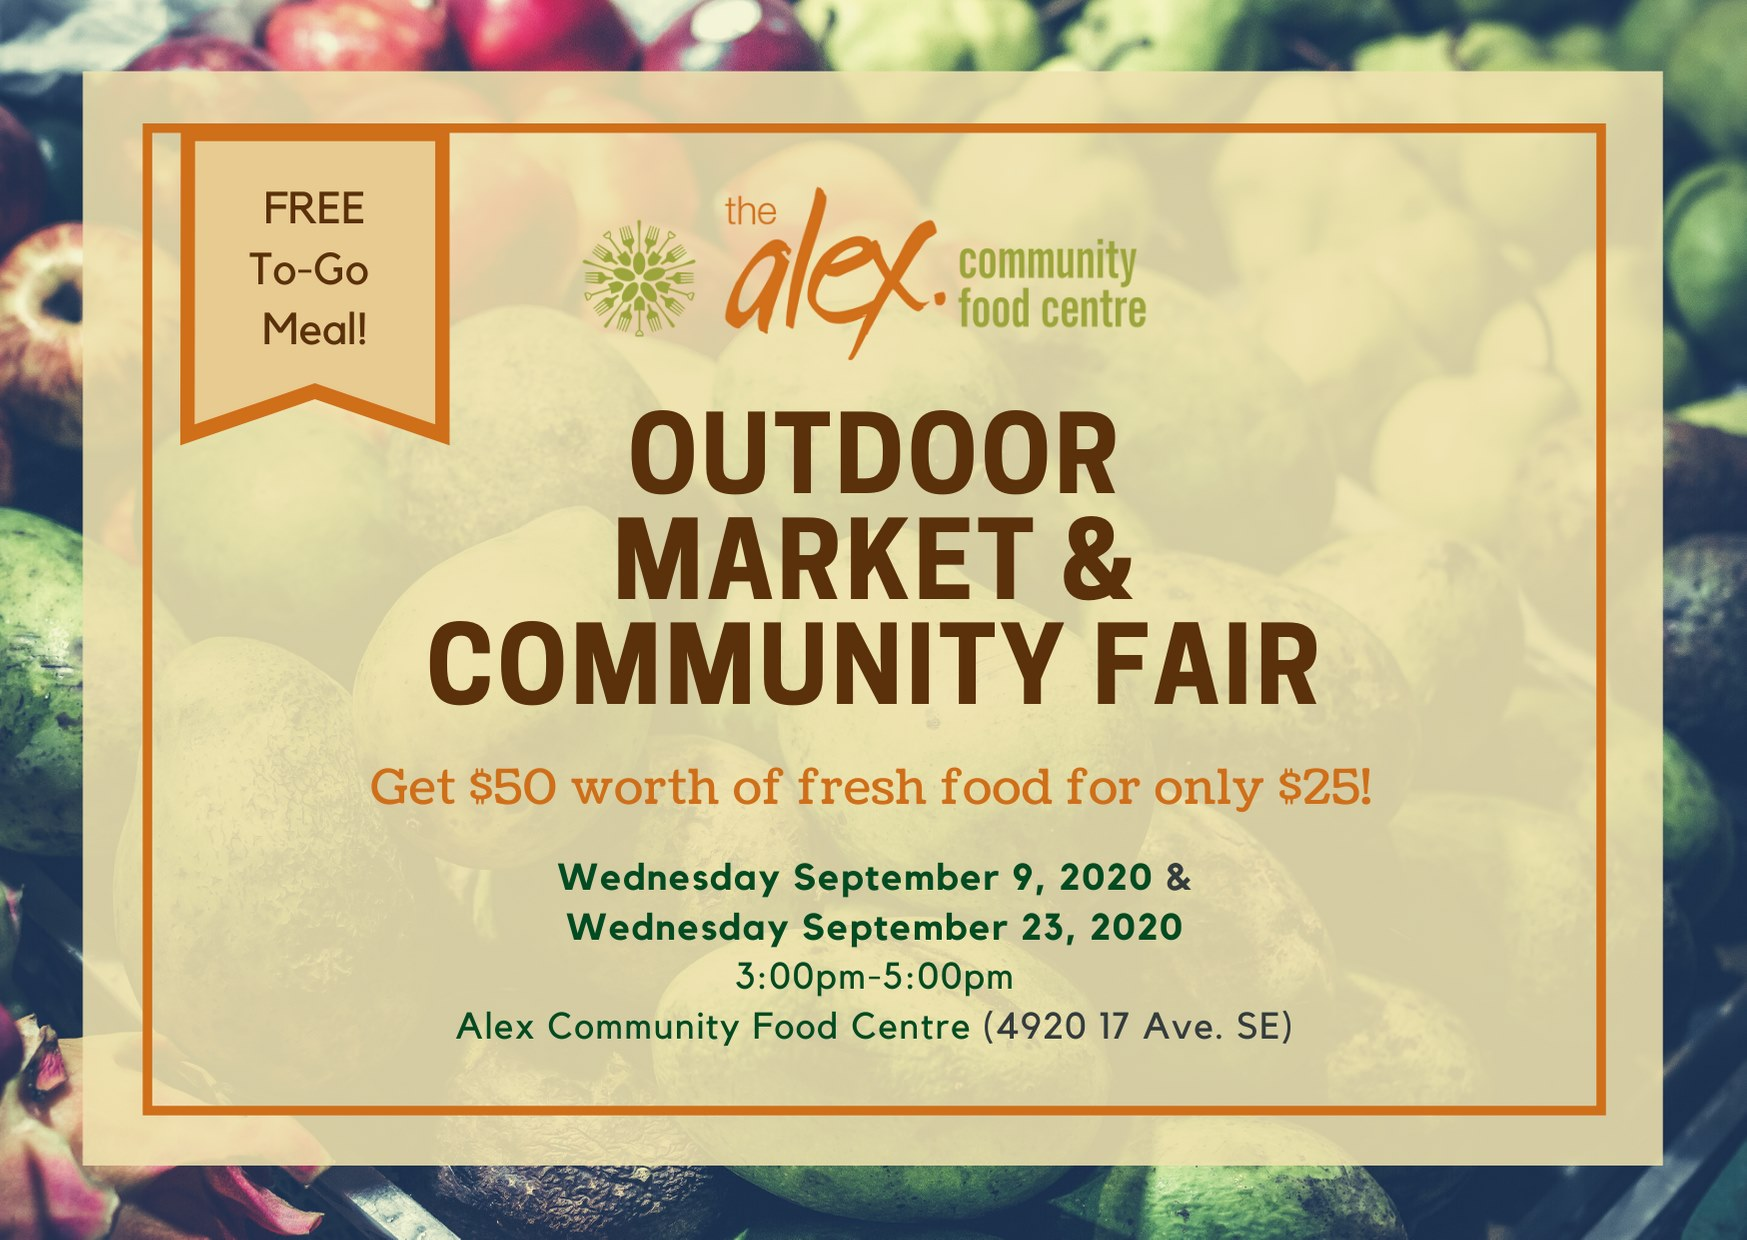 Outdoor Market and Community fair